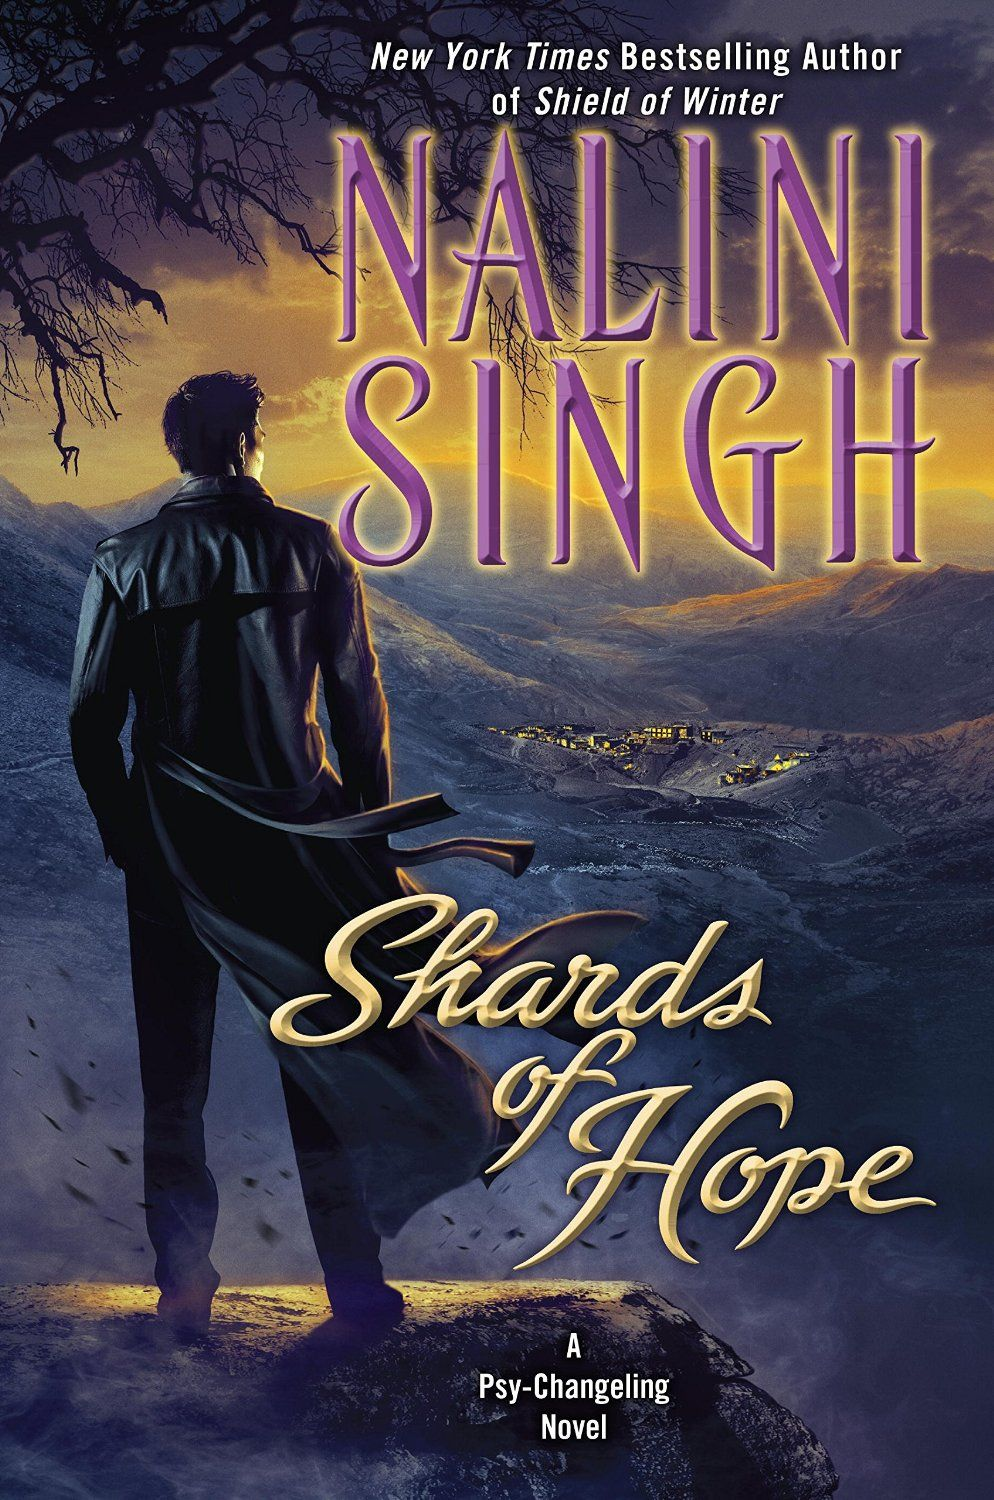 Amazon.com: Shards of Hope (Psy/Changeling Series Book 14) eBook: Nalini Singh: Books